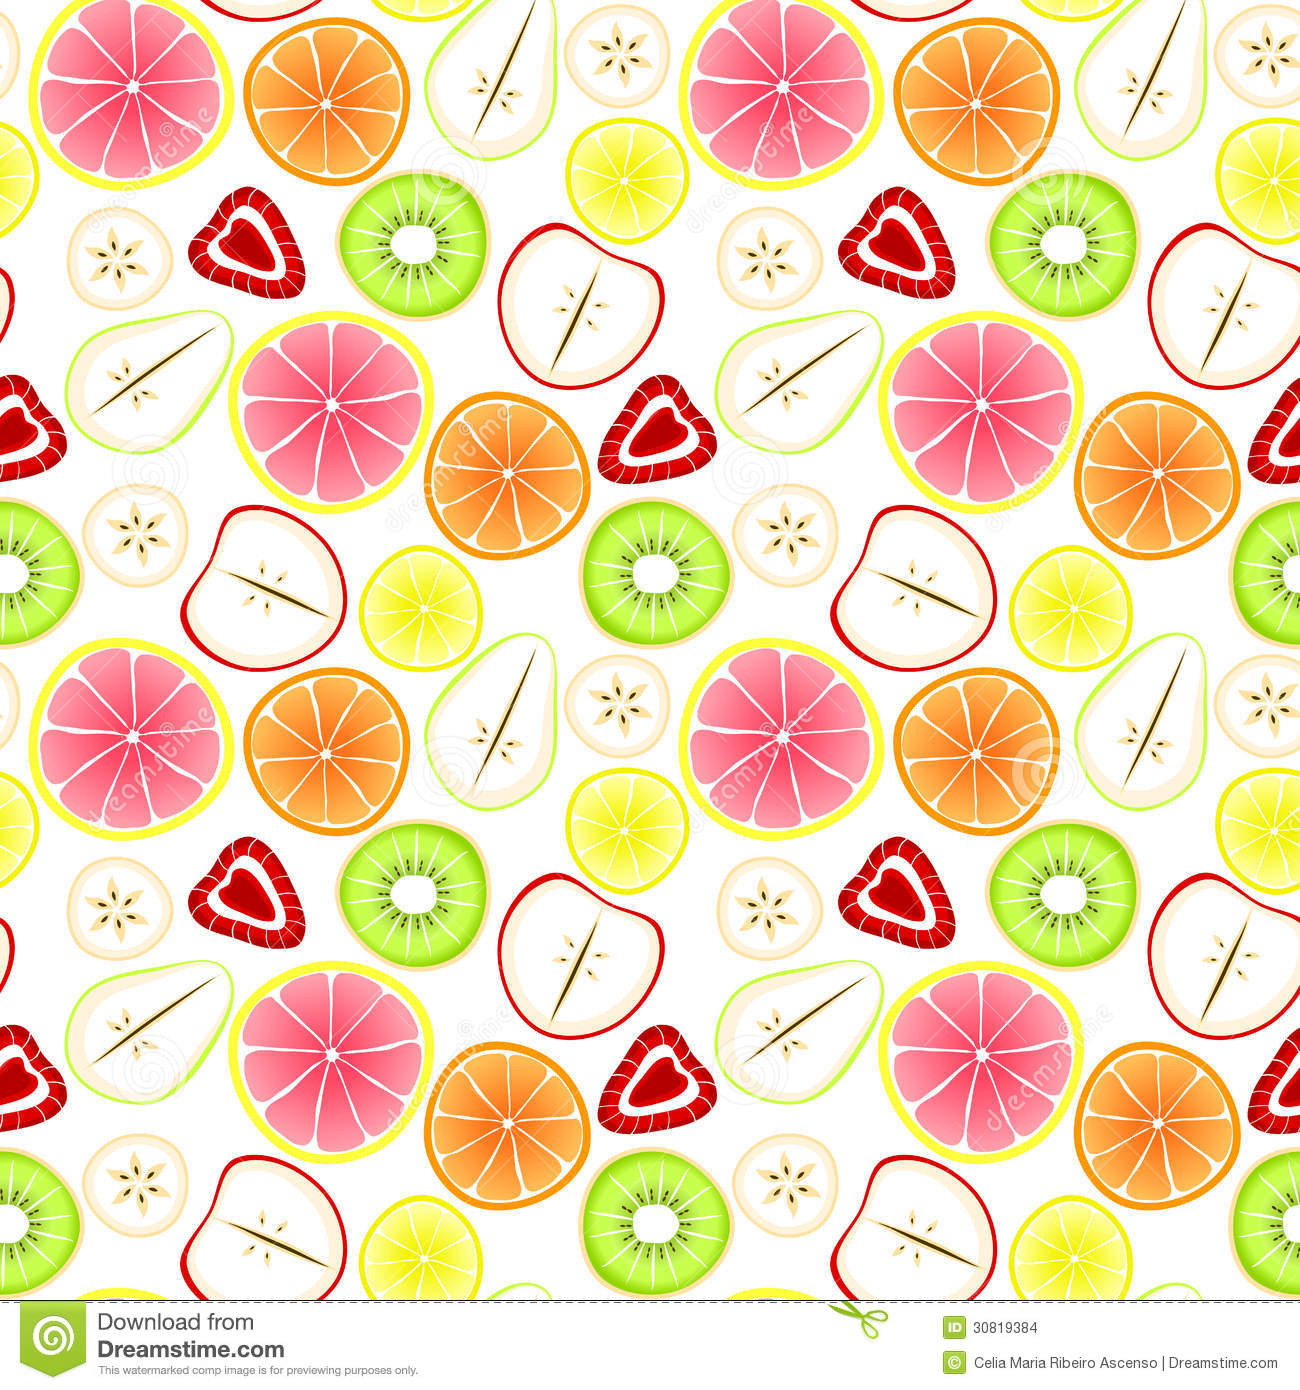 Cute Panda Iphone Wallpapers Sliced Fruit Seamless Background Stock Images Image